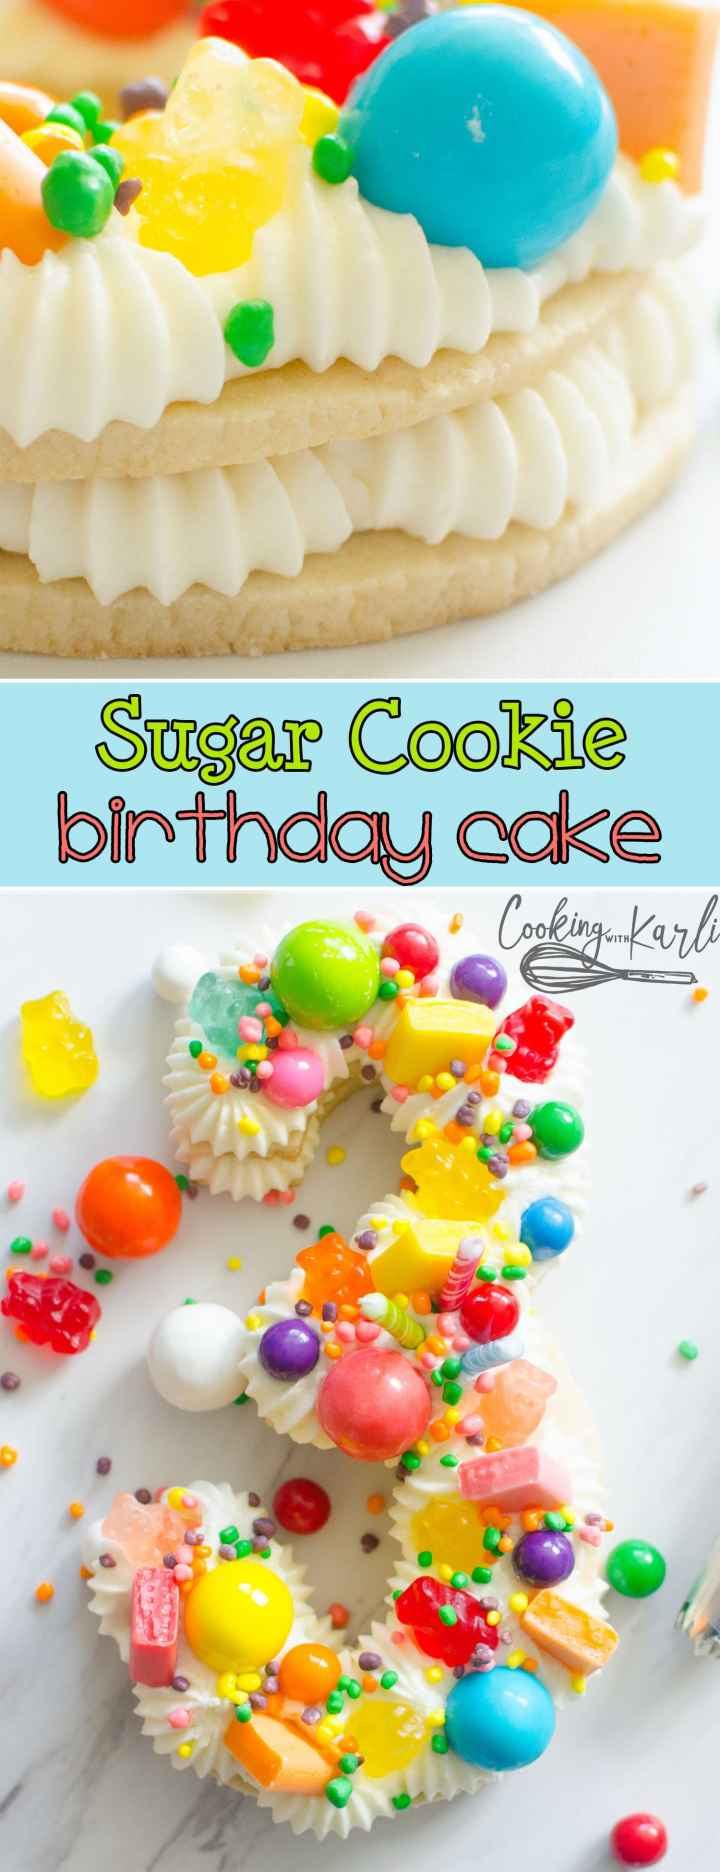 Sugar Cookie Birthday Cake is a double layer sugar cookie, filled and piped with vanilla buttercream. The Birthday Cake is topped with colorful gumballs, gummy candies and nerds. |Cooking with Karli| #birthdaycake #sugarcookies #recipe #candy #maxcake #3yearold #birtdhay #party